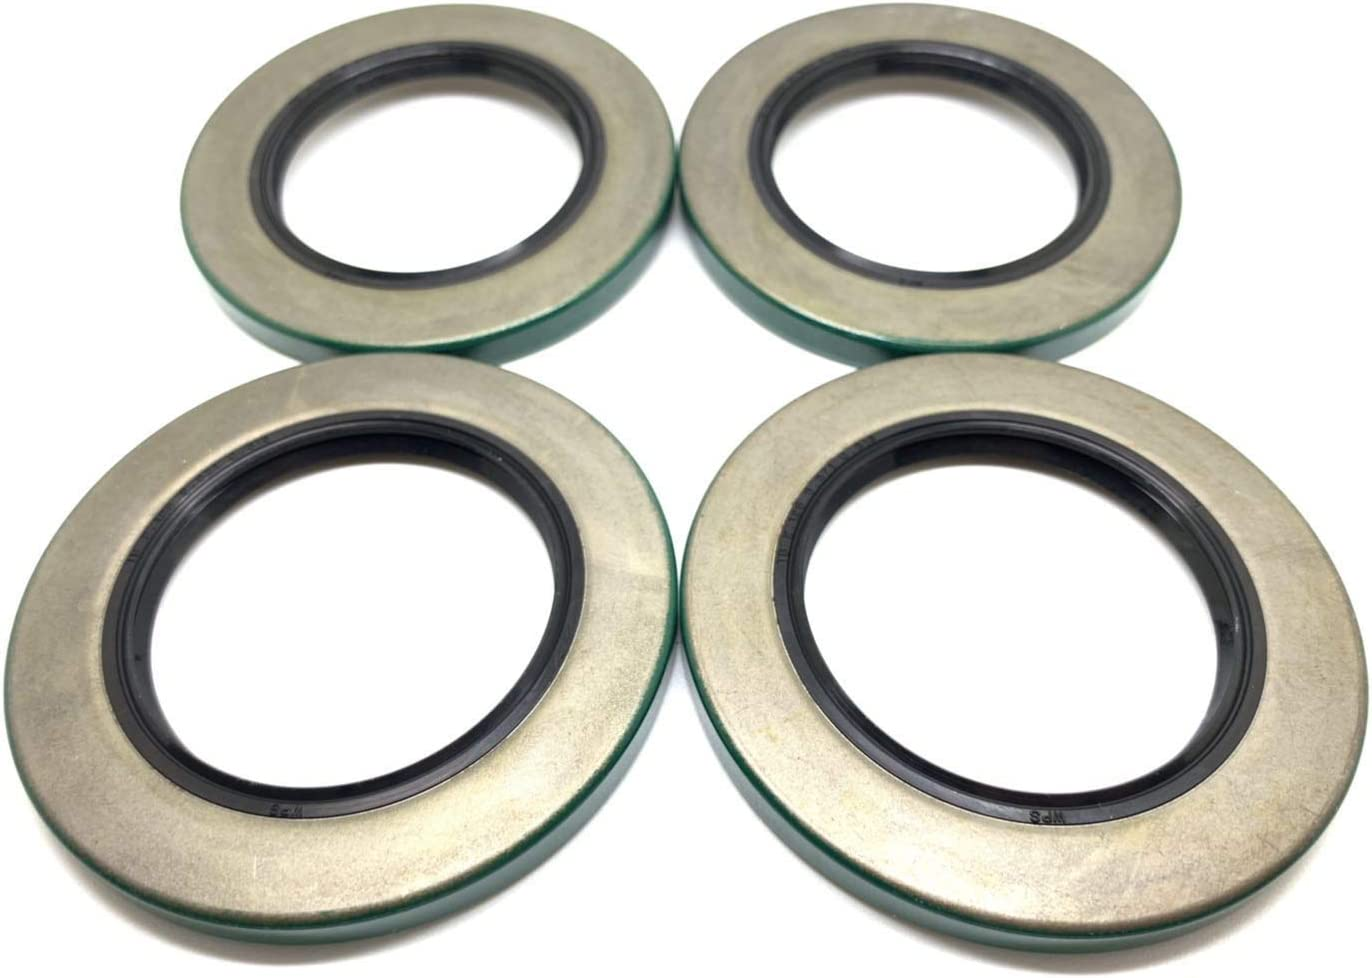 (Pack of 4) WPS Trailer Hub Wheel Grease Seals 10-10 (21333TB) for 5200-7000# Axles 2.125'' X 3.376'' 61TlV0TwvmL